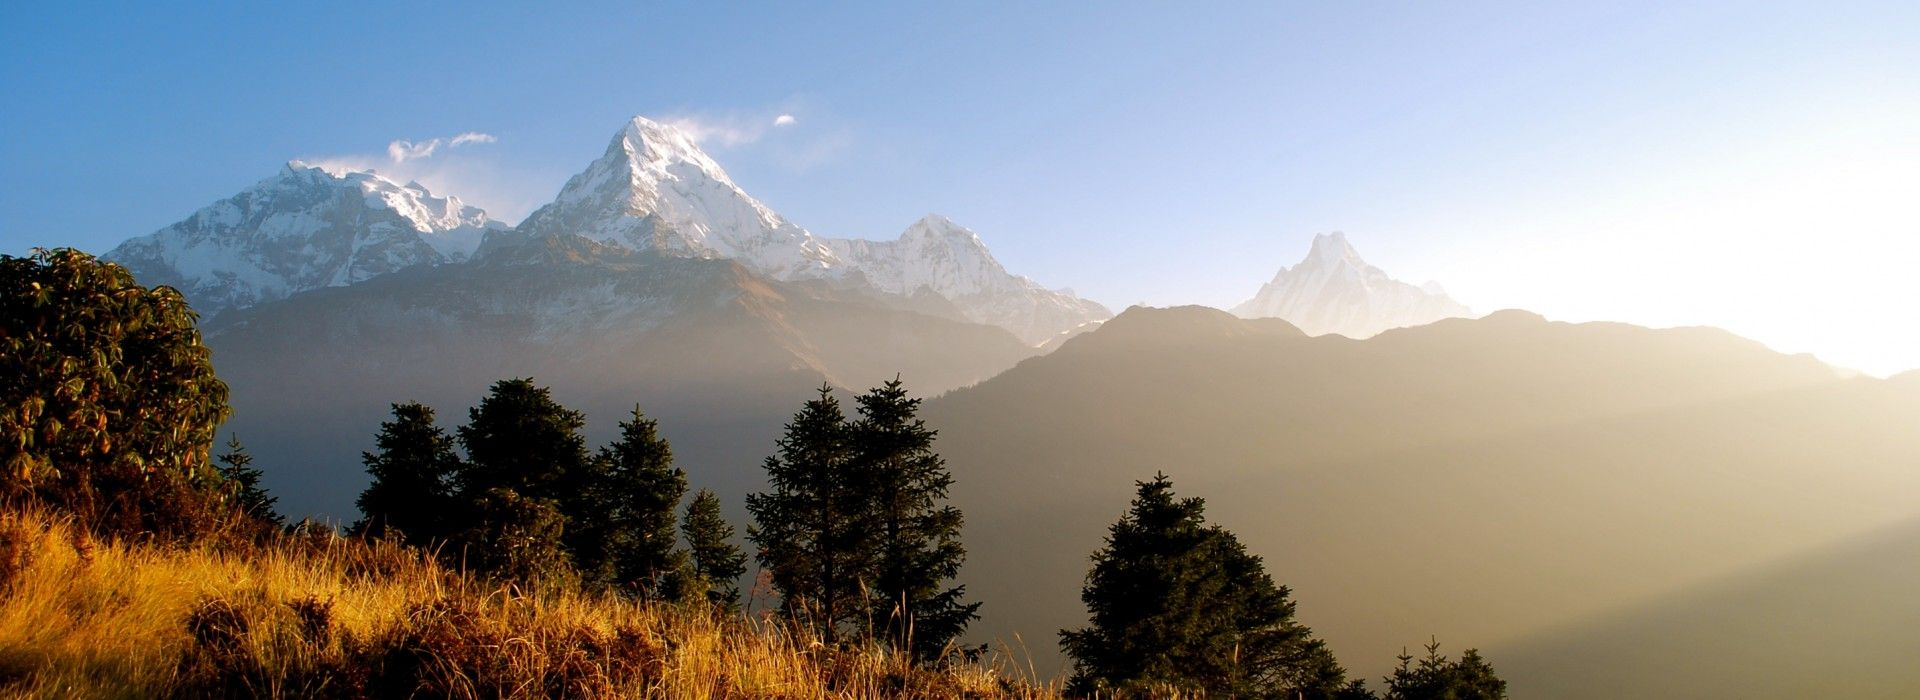 Sightseeing, attractions, culture and history Tours in Nagarkot